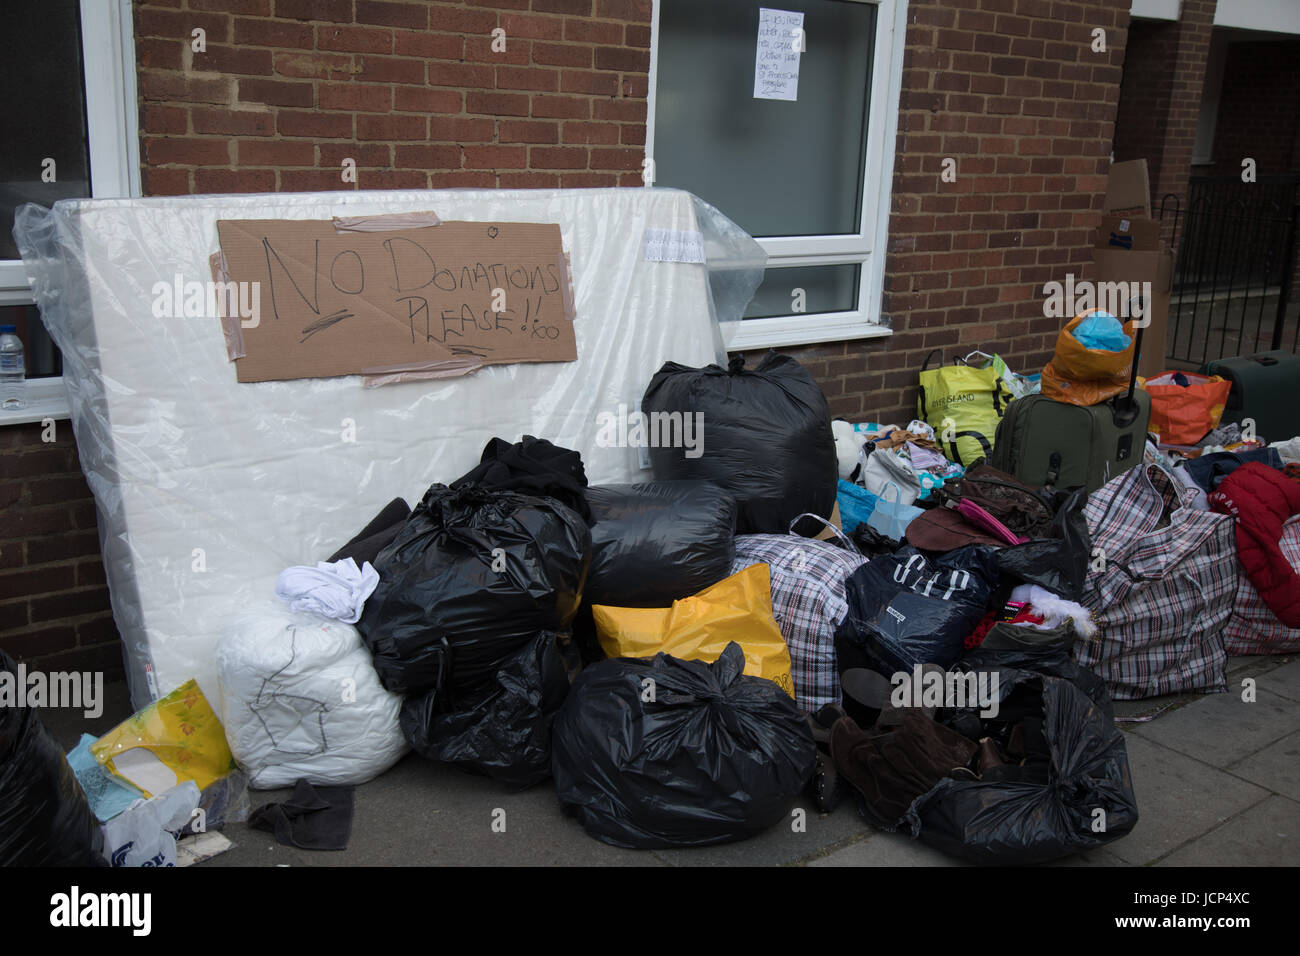 Kensington, London, UK. 17th June, 2017. Bags of donated clothes and goods. Scenes around Latimer road area where - Stock Image